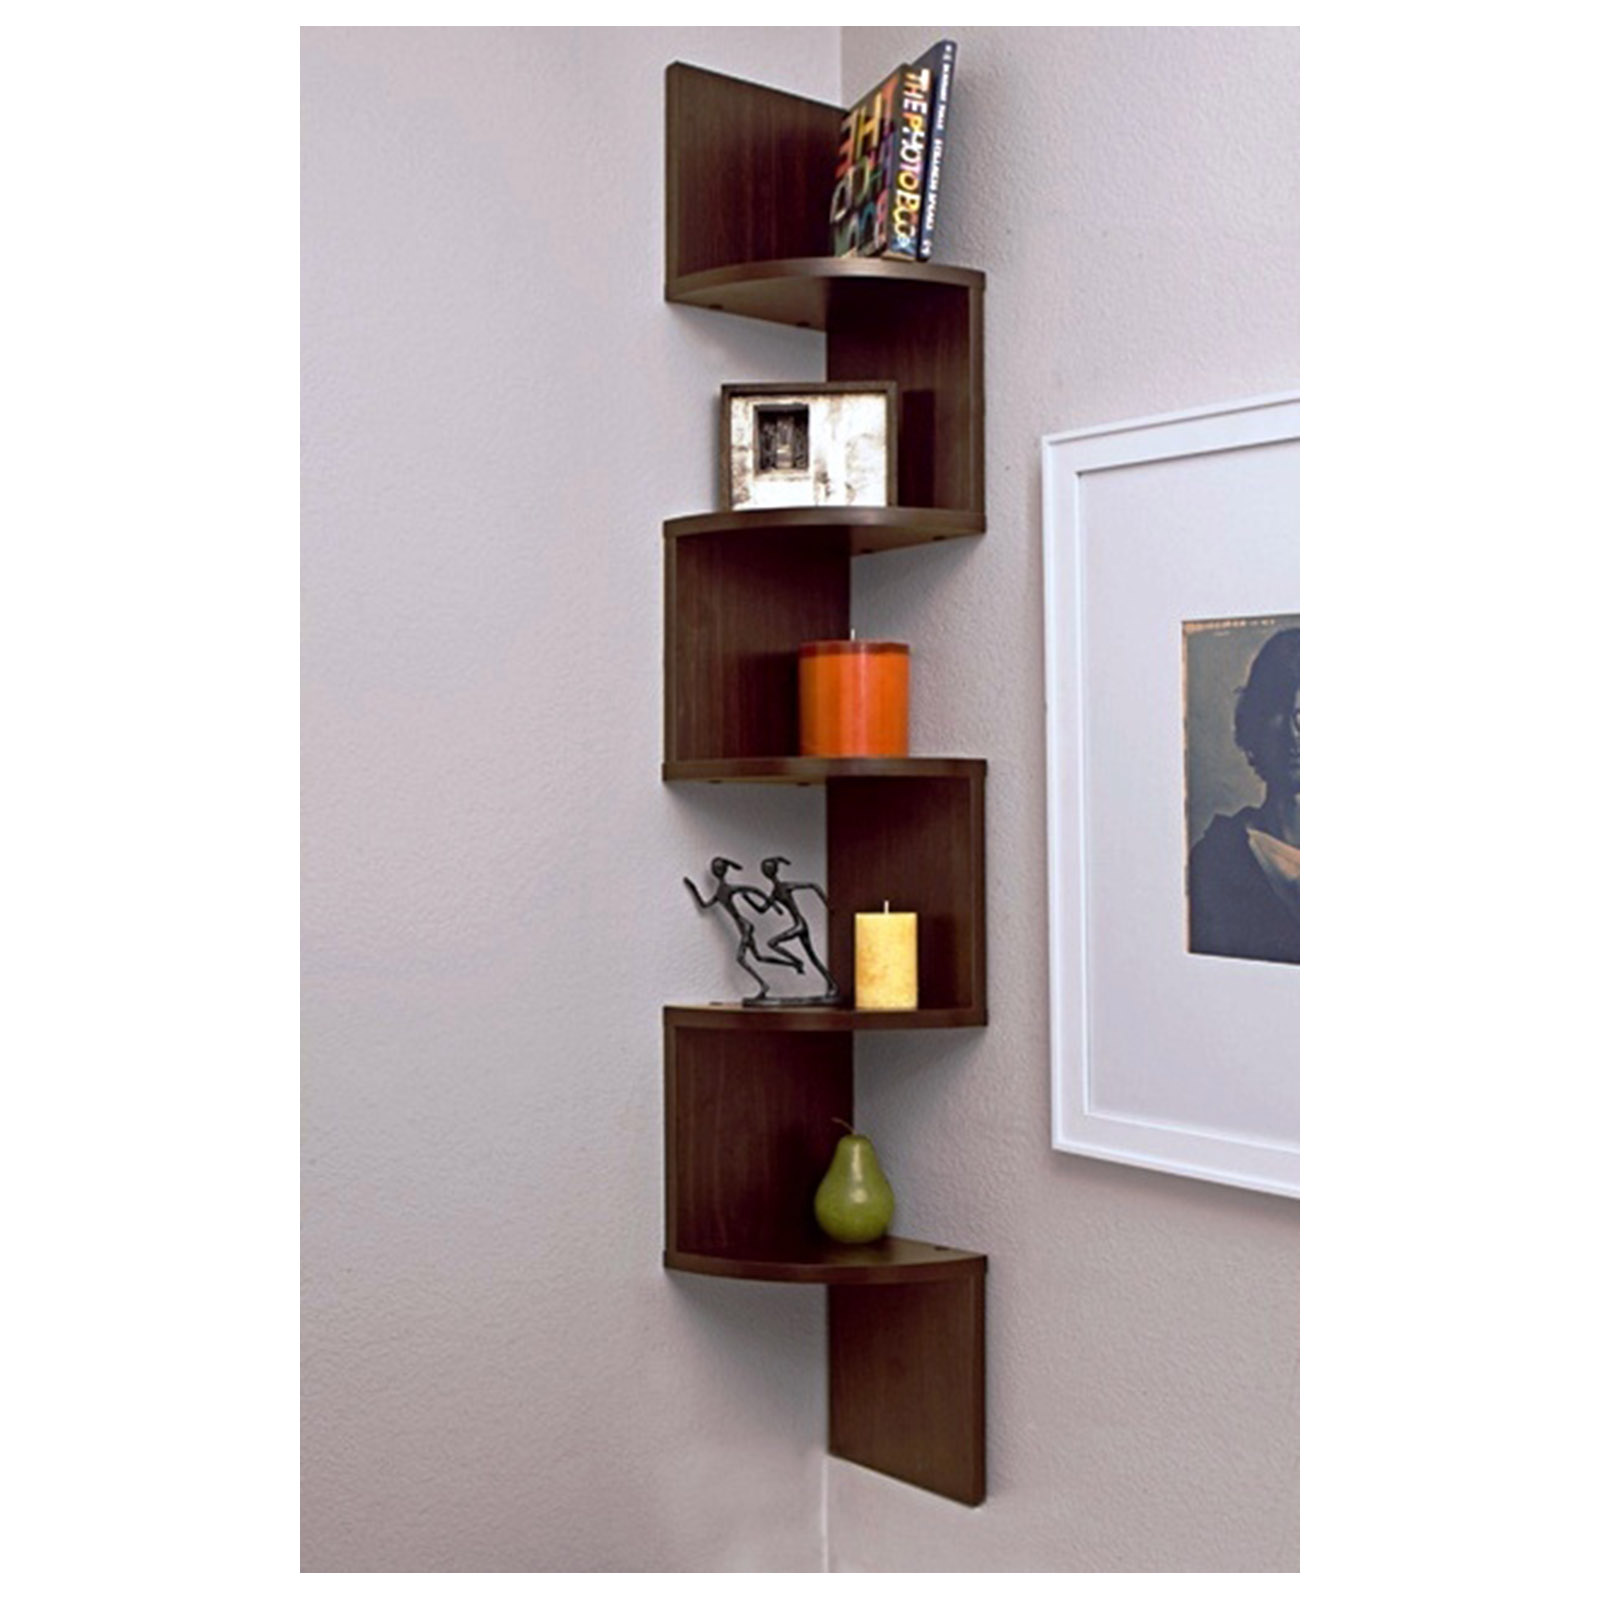 2 Corner Wall Shelves Step Shelf Wall 5 Shelves Unit Wall. Decorate Your Living Room Bohemian Style. Living Room Shelves Diy. Paula Deen Living Room Furniture Collection. Small Open Plan Living Room Decorating Ideas. How To Decorate My Apartment Living Room. Colors For Living Room Walls. Apartment Living Room Decorating Ideas Pictures. Best Light Bulbs For Living Room